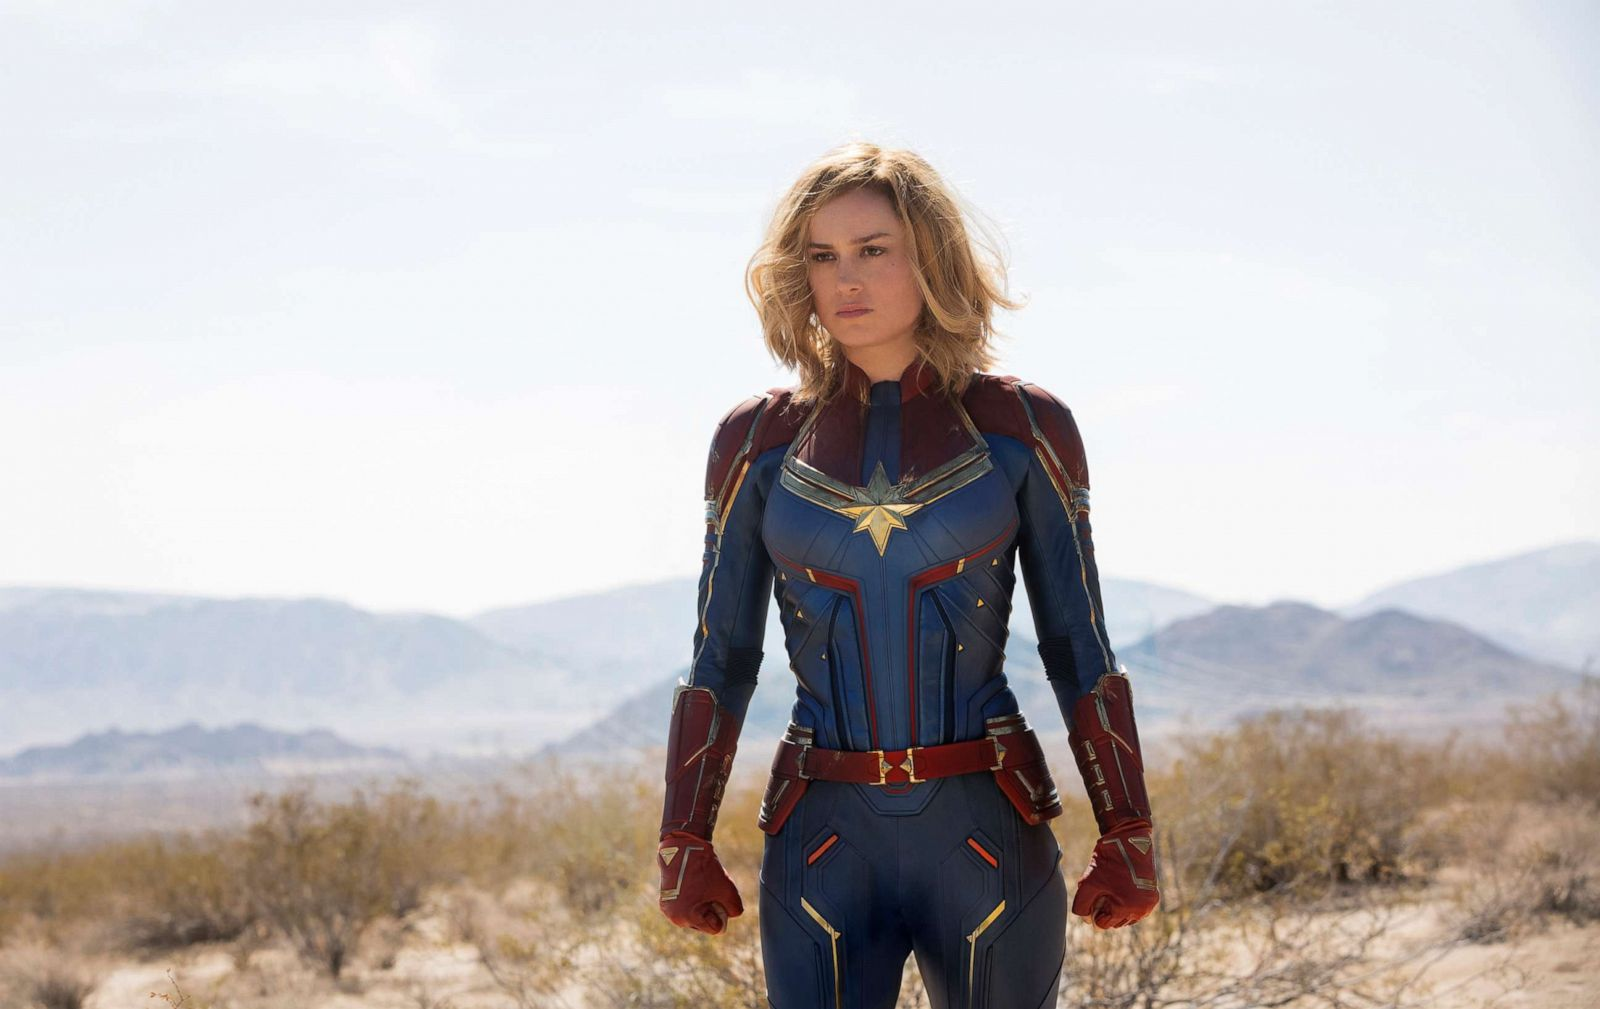 5 Marvel Cinematic Universe movies you must see before 'Avengers